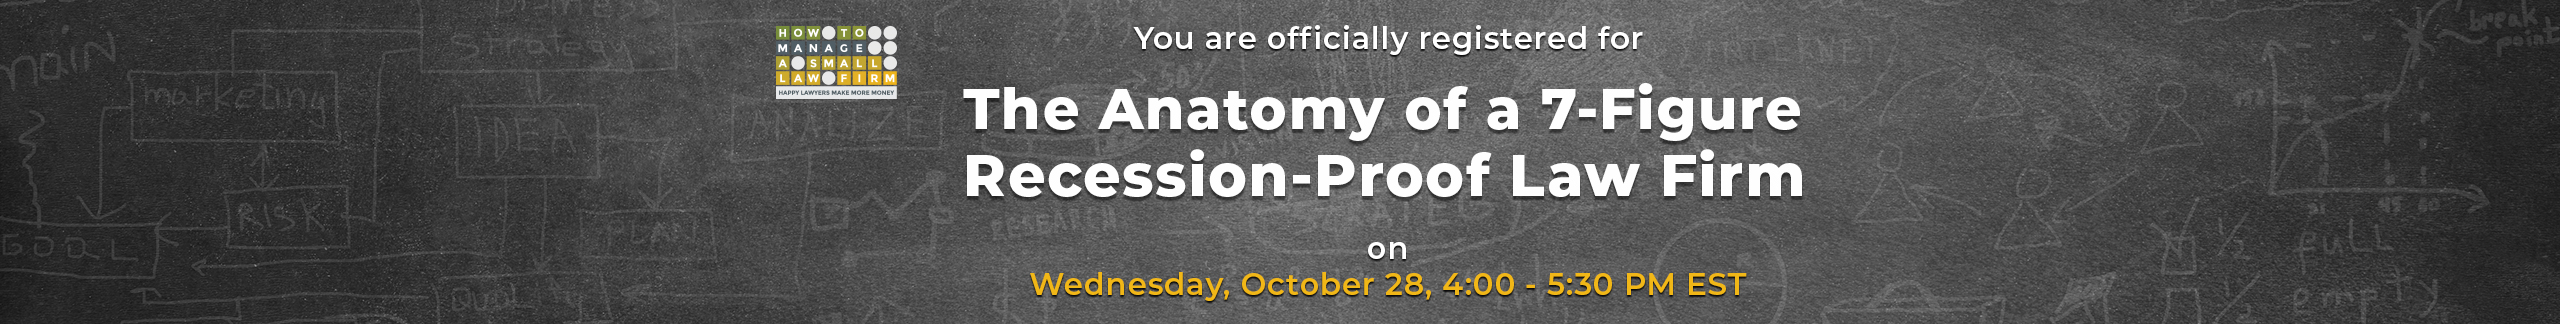 you are registered for the anatomy of a 7-figure recession-proof law firm exclusive master class webinar wednesday october 28 4:00pm - 5:30pm ET